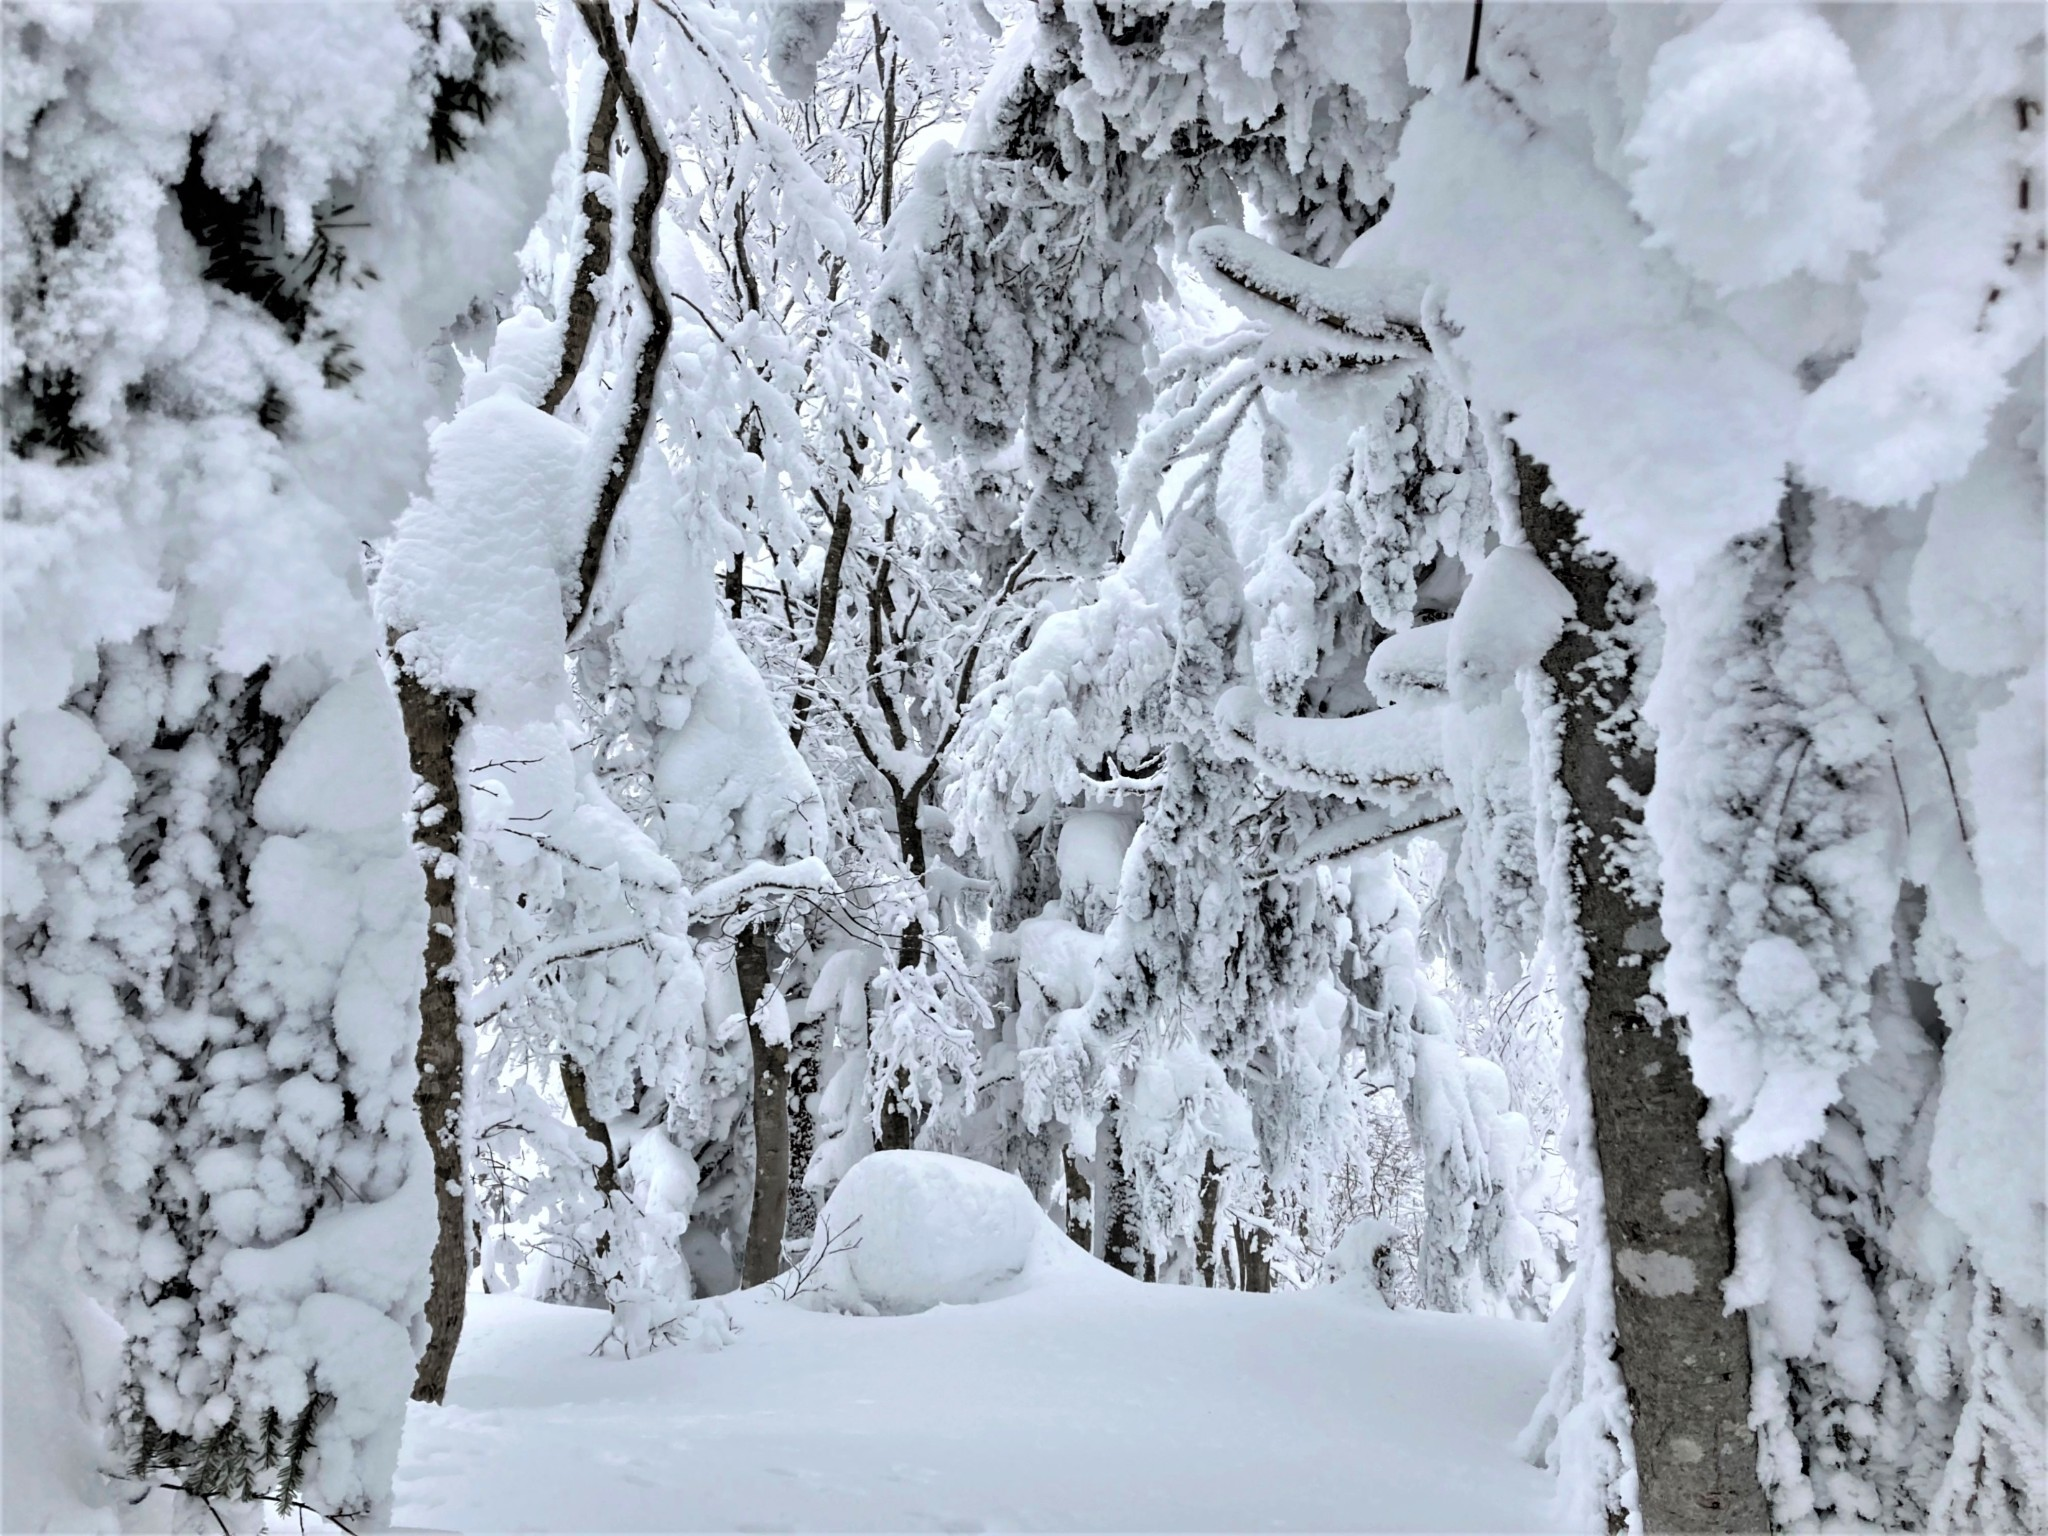 A winter forest clearing covered in deep virgin snow on Mount Zao in Yamagata, Japan.